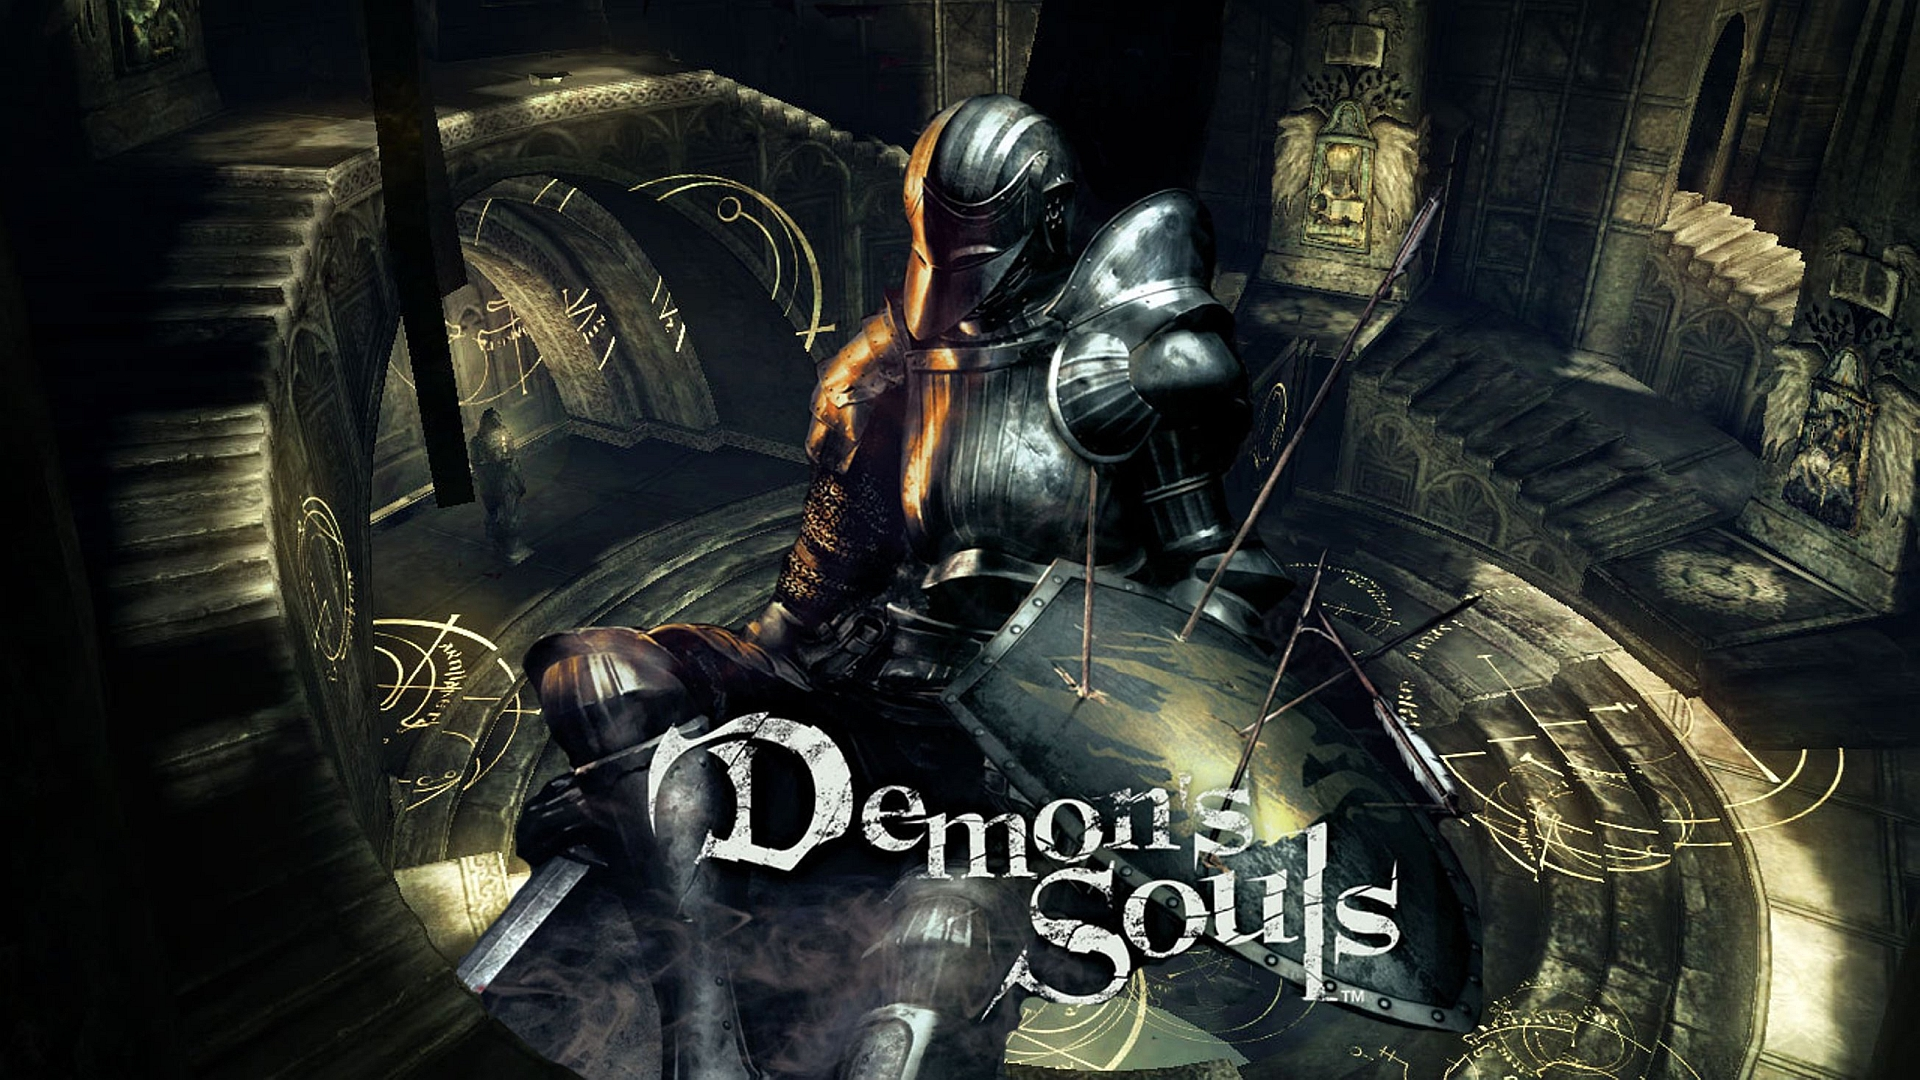 In Demon's Souls, players find a possible hint of a Metal Gear Solid remake